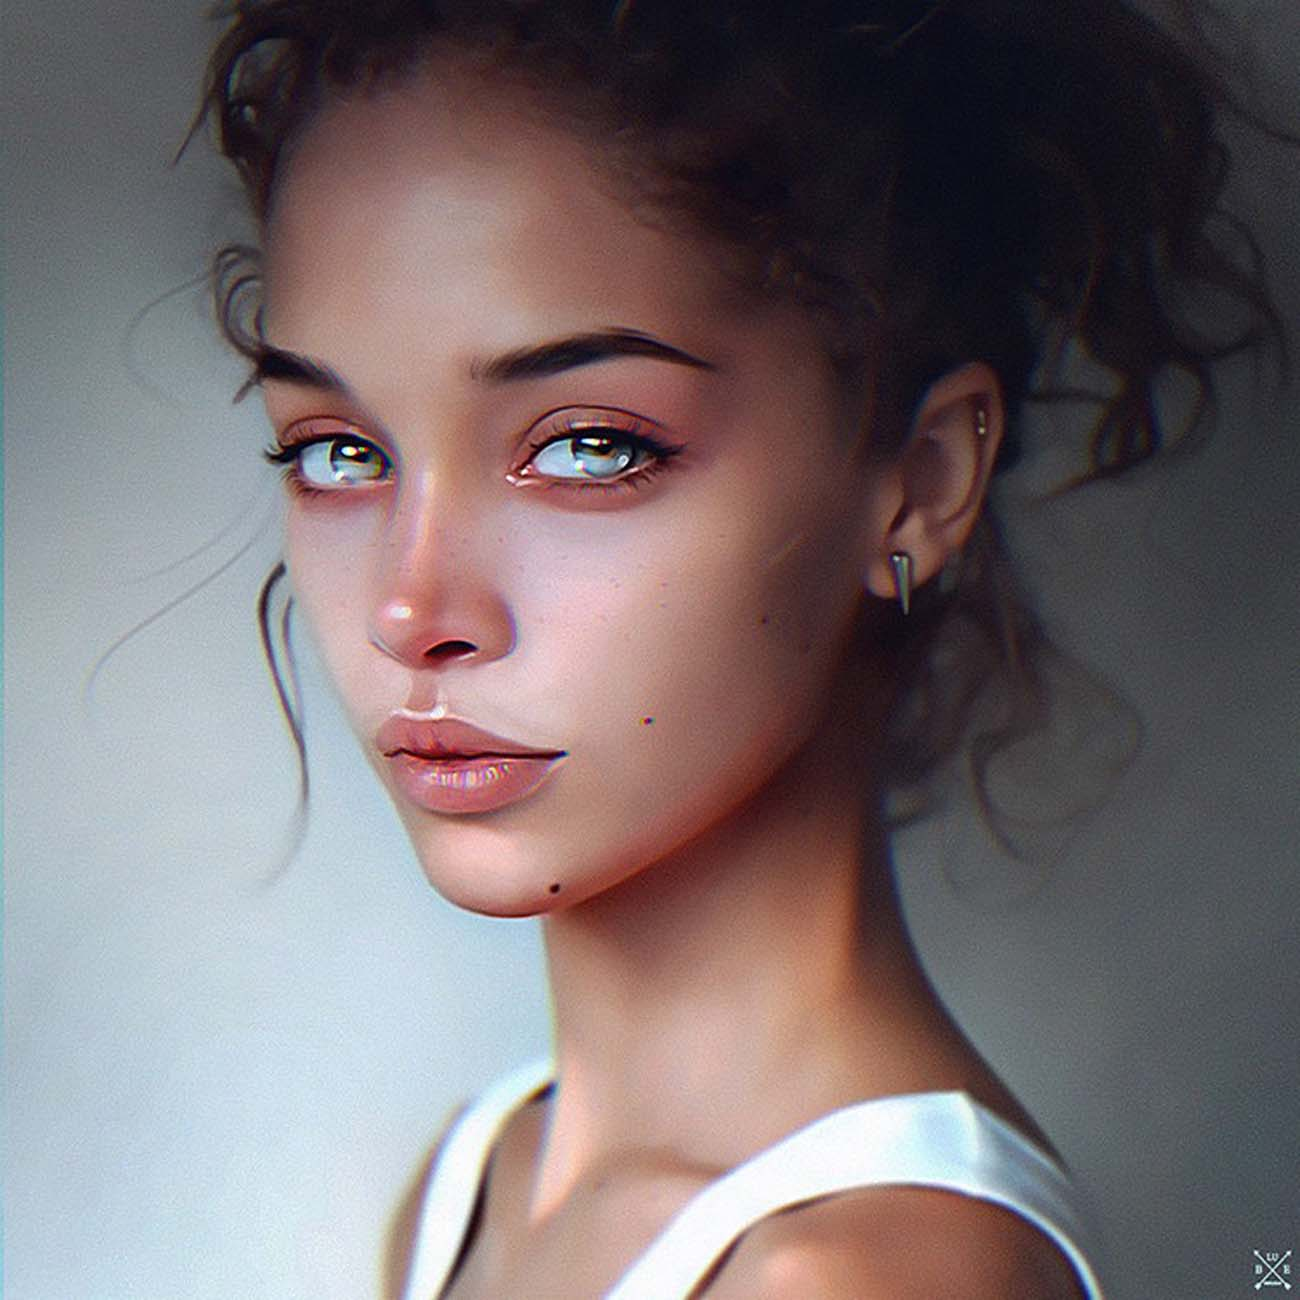 Julia Razumova | Paintable.cc Digital Painting Inspiration - Learn the Art of Digital Painting! #digitalpainting #digitalart